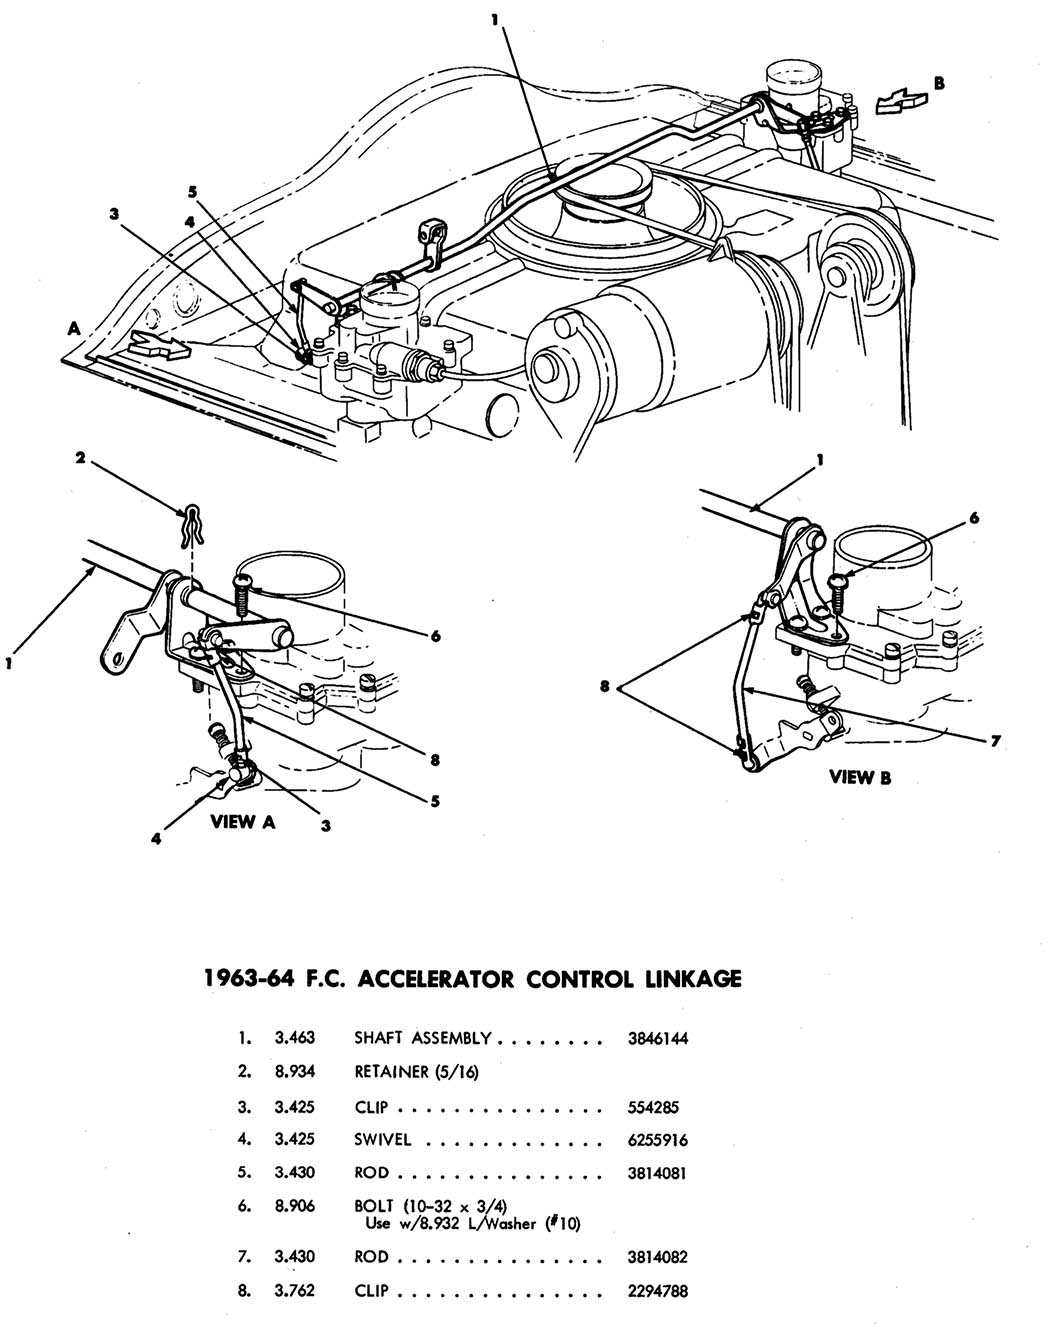 Corvair Turbo Engine Diagram Get Free Image About Wiring